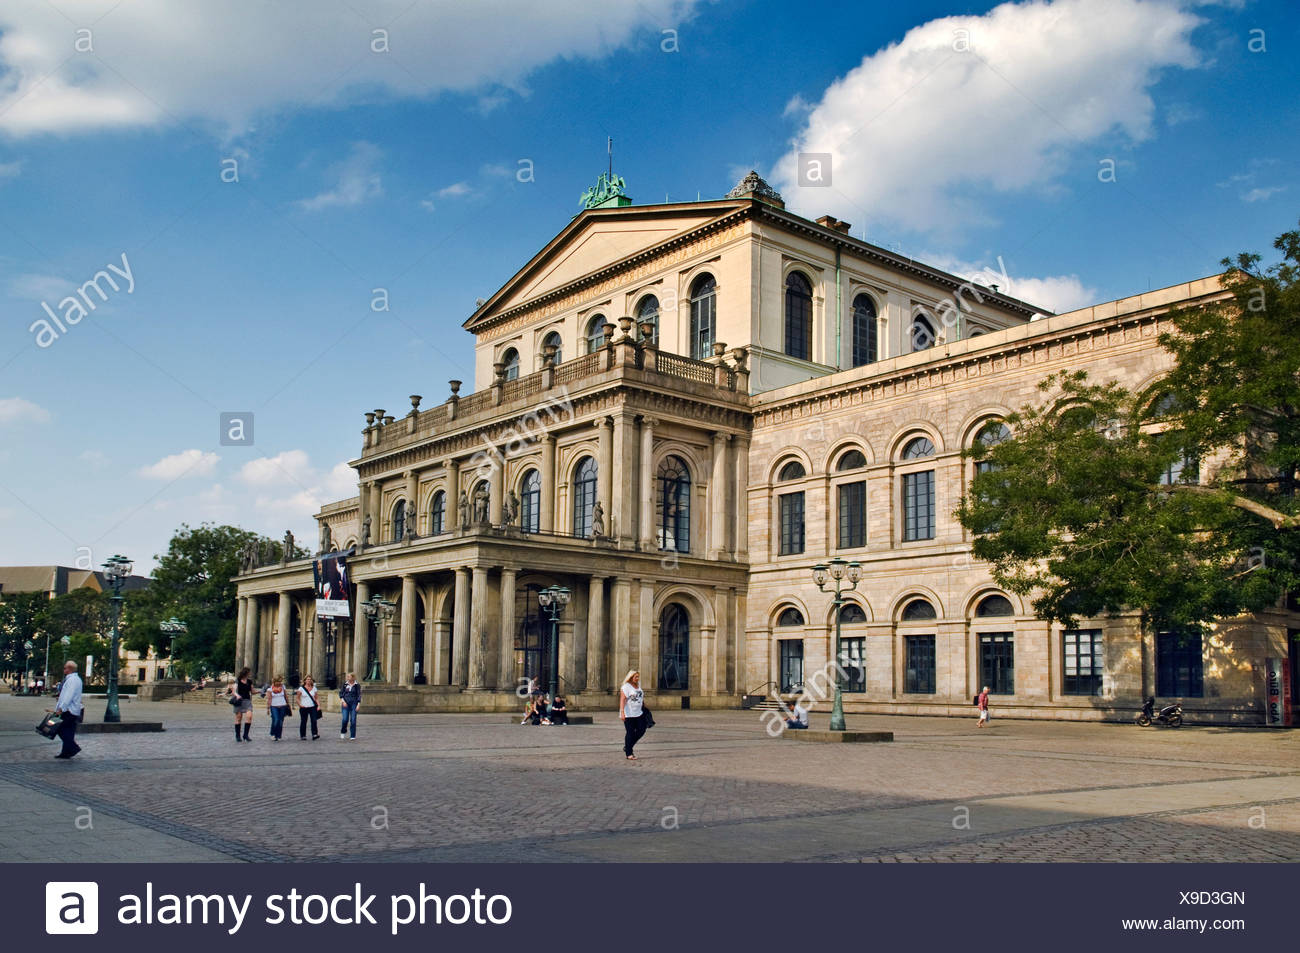 Hanover opera house, built from 1845-1852 by master builder Georg Ludwig Friedrich Laves, Hannover, Hanover, Lower Saxony - Stock Image